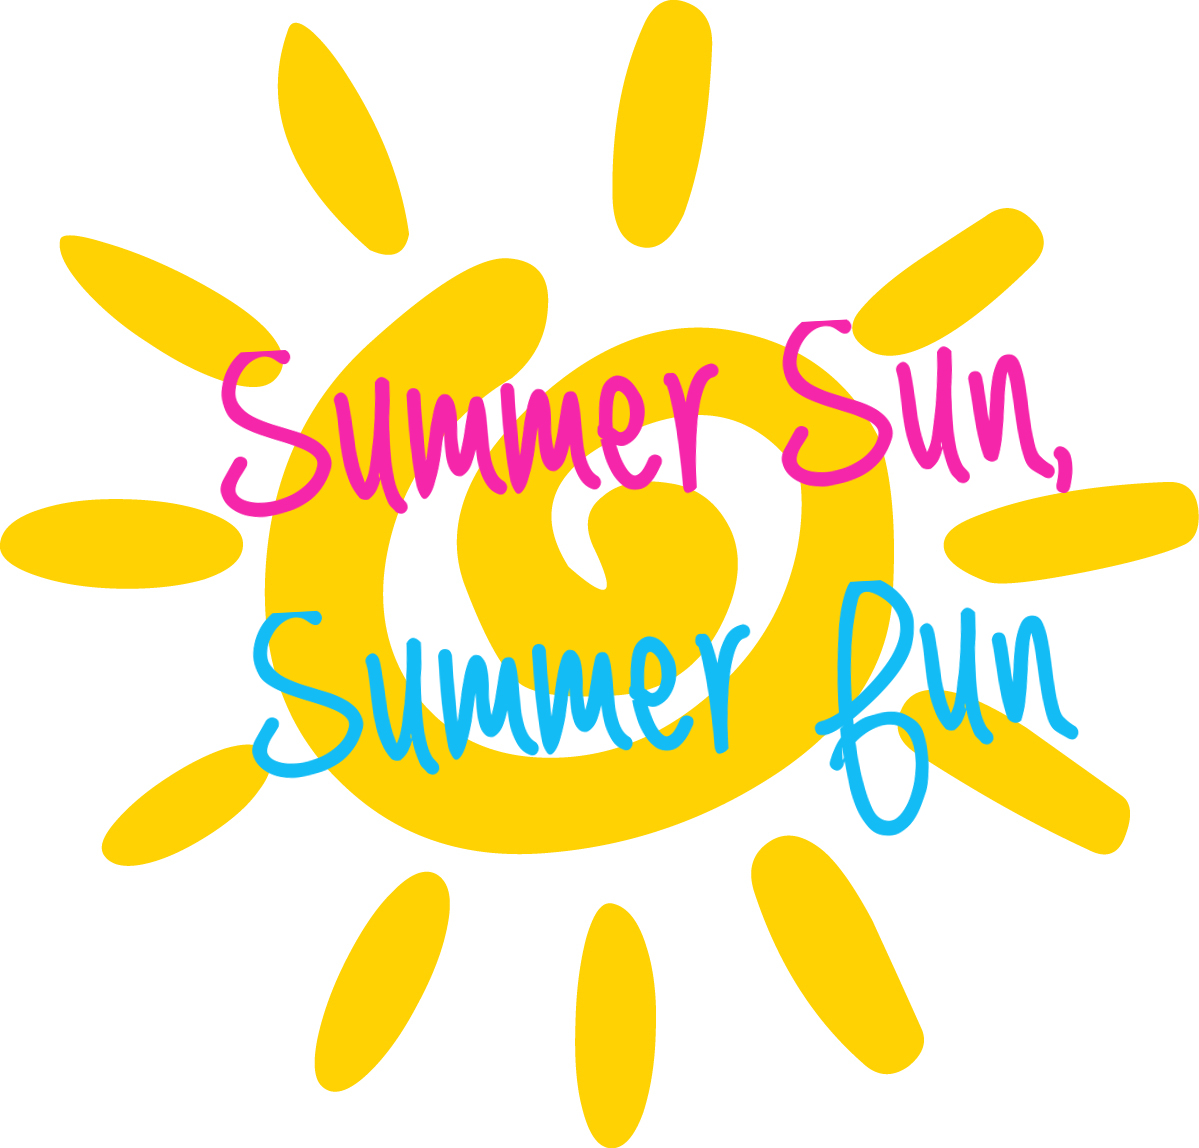 summer fun clipart at getdrawings com free for personal use summer rh getdrawings com summer fun clipart images summer fun clip art free images